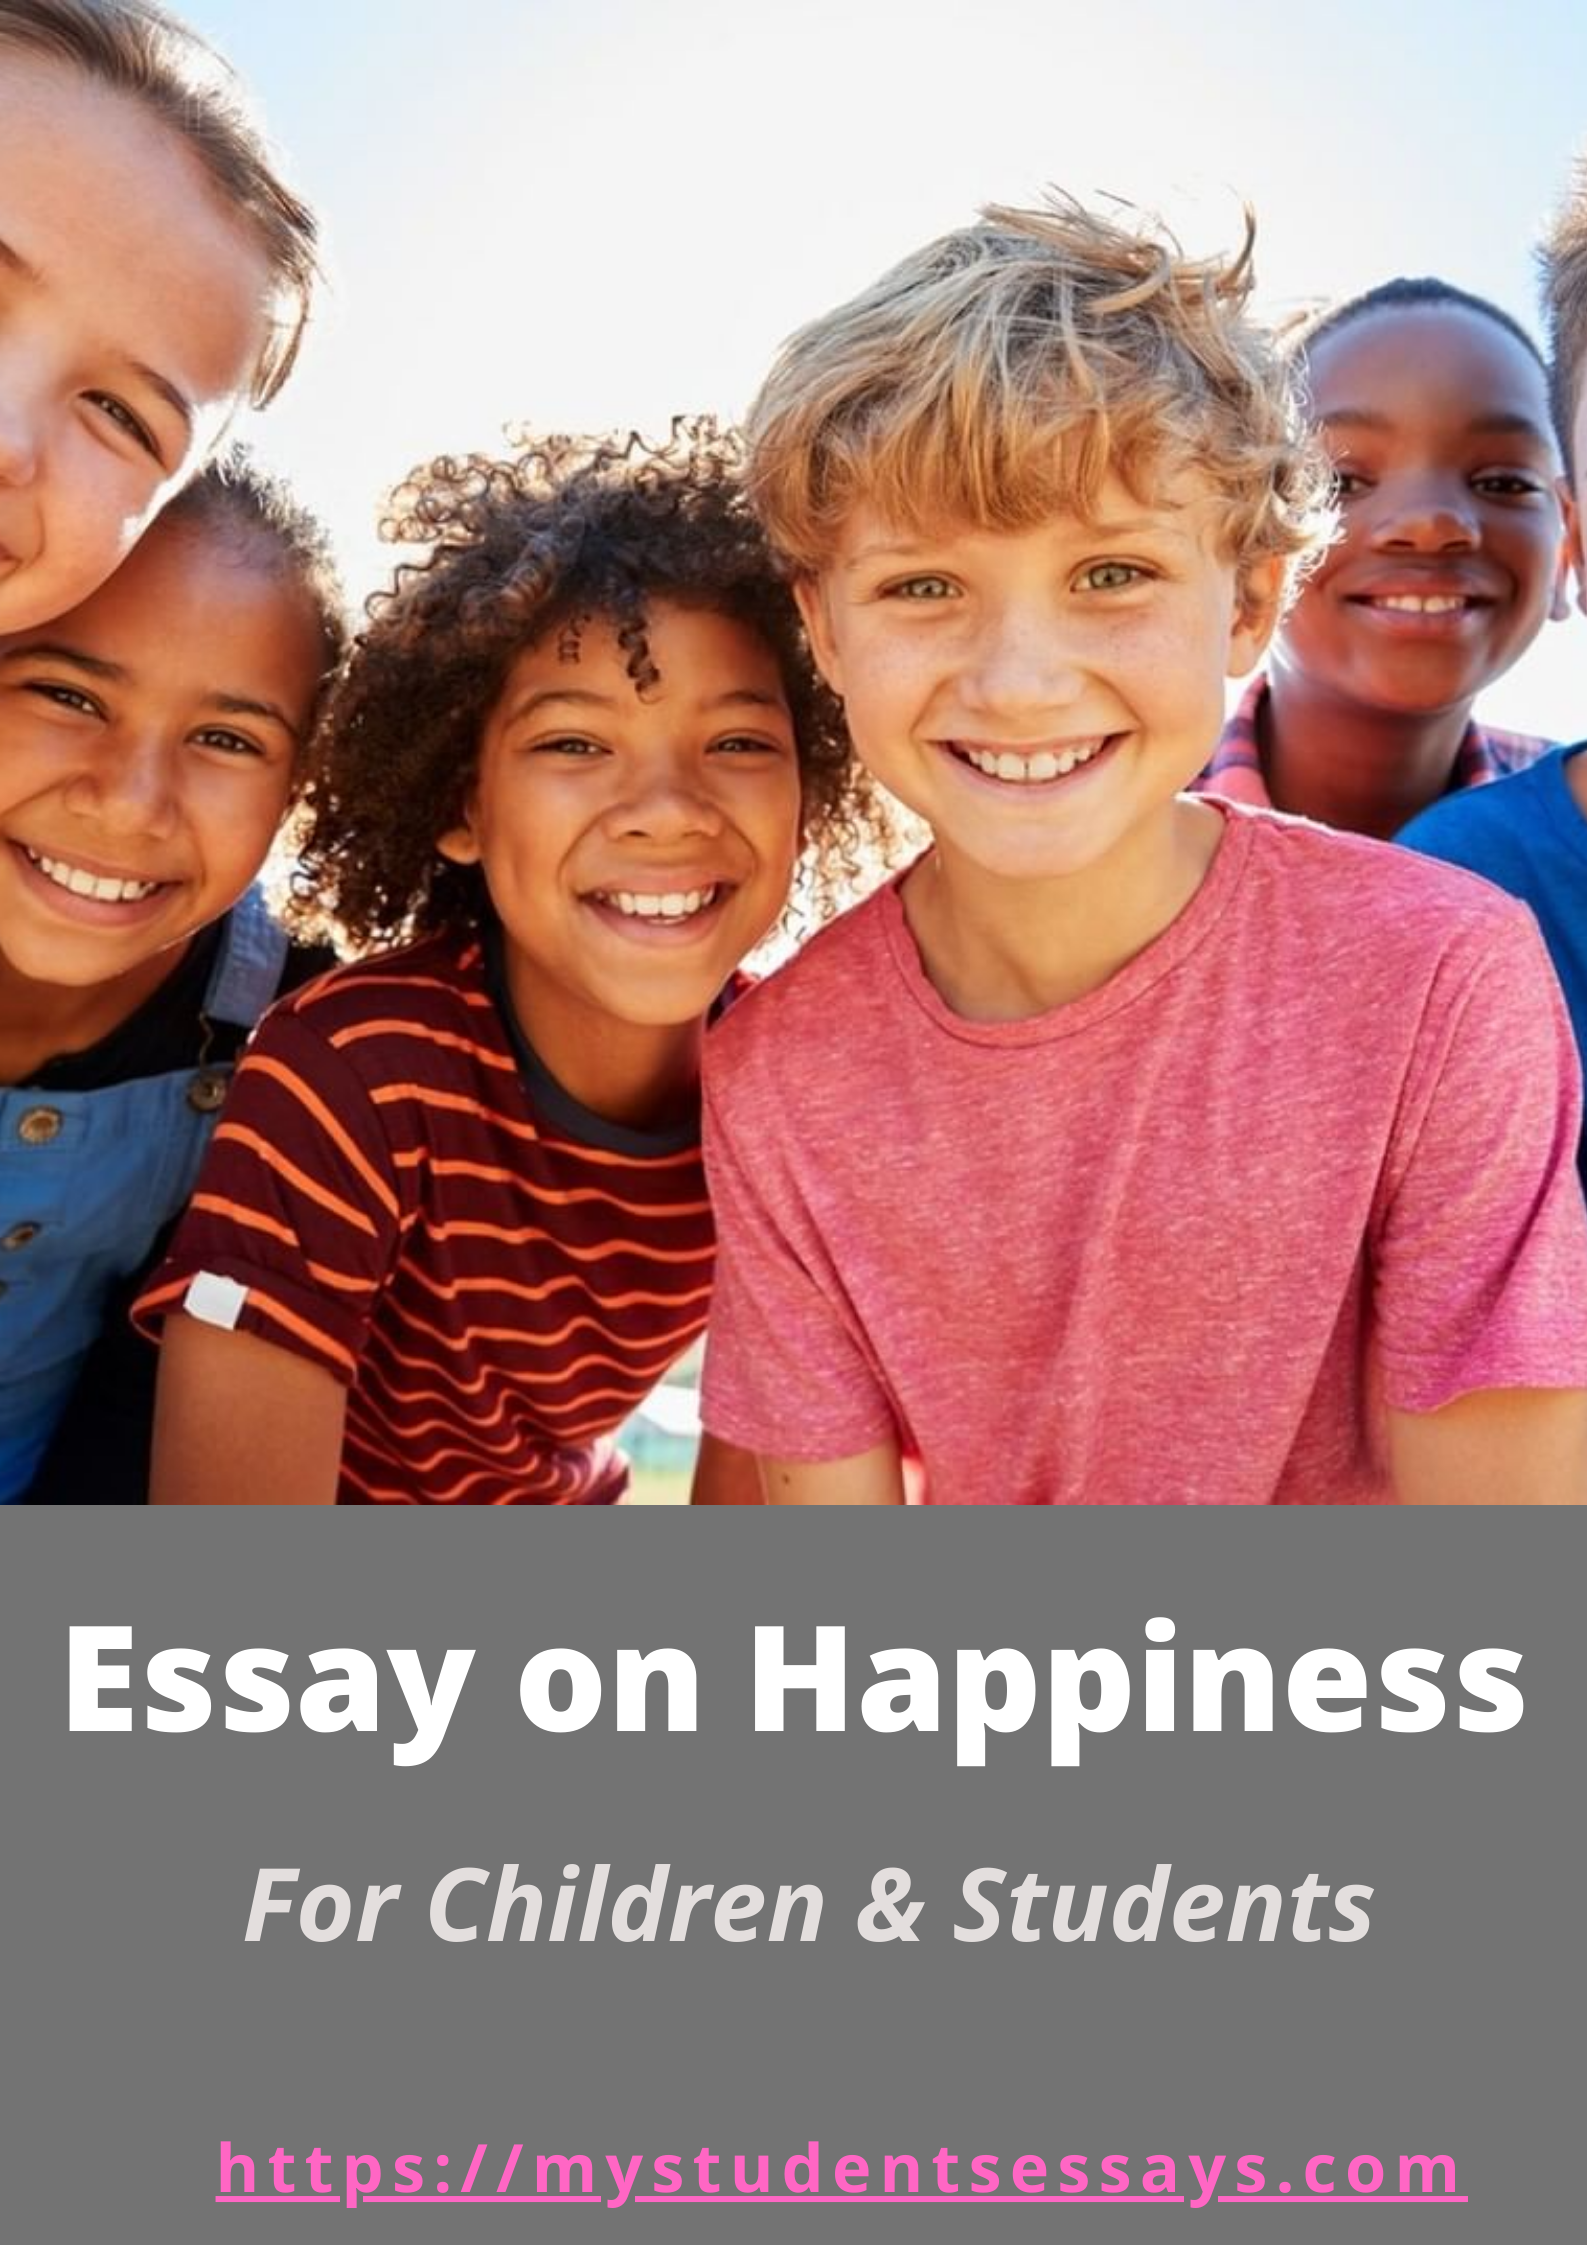 Essay on Happiness & its benefits in life for children & Students